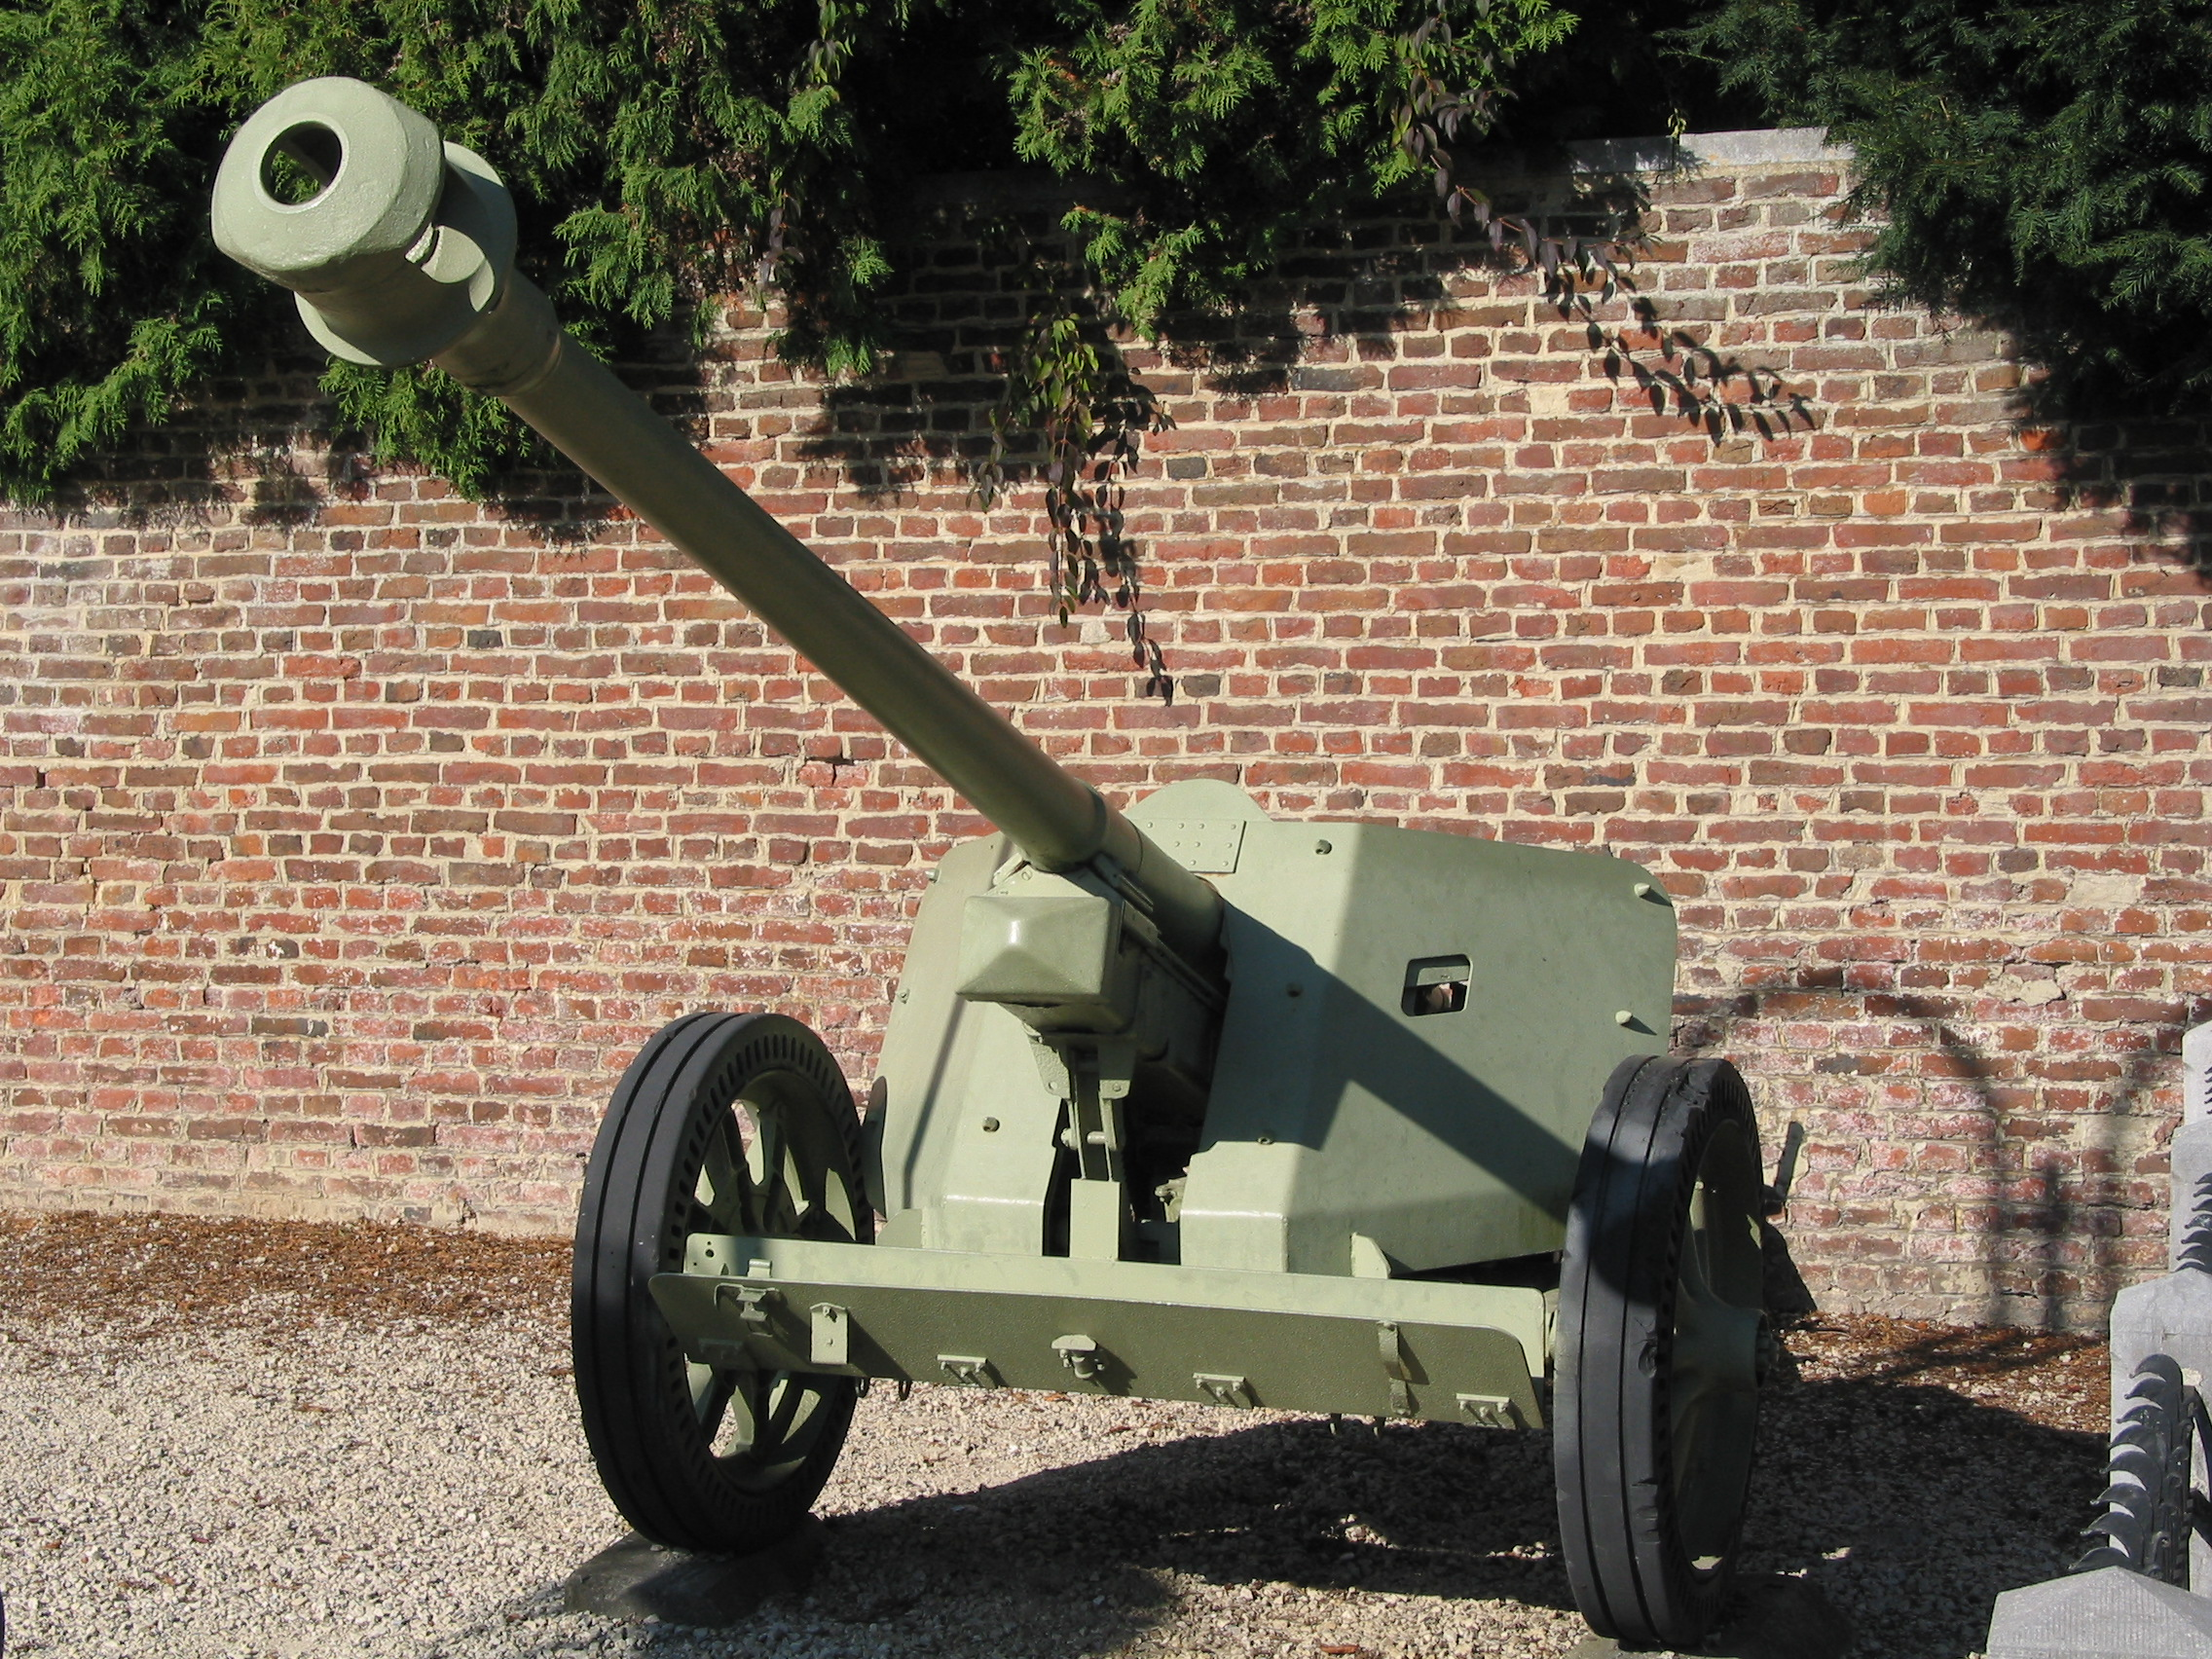 German_PaK_40_75mm_anti-tank_gun_in_Burd